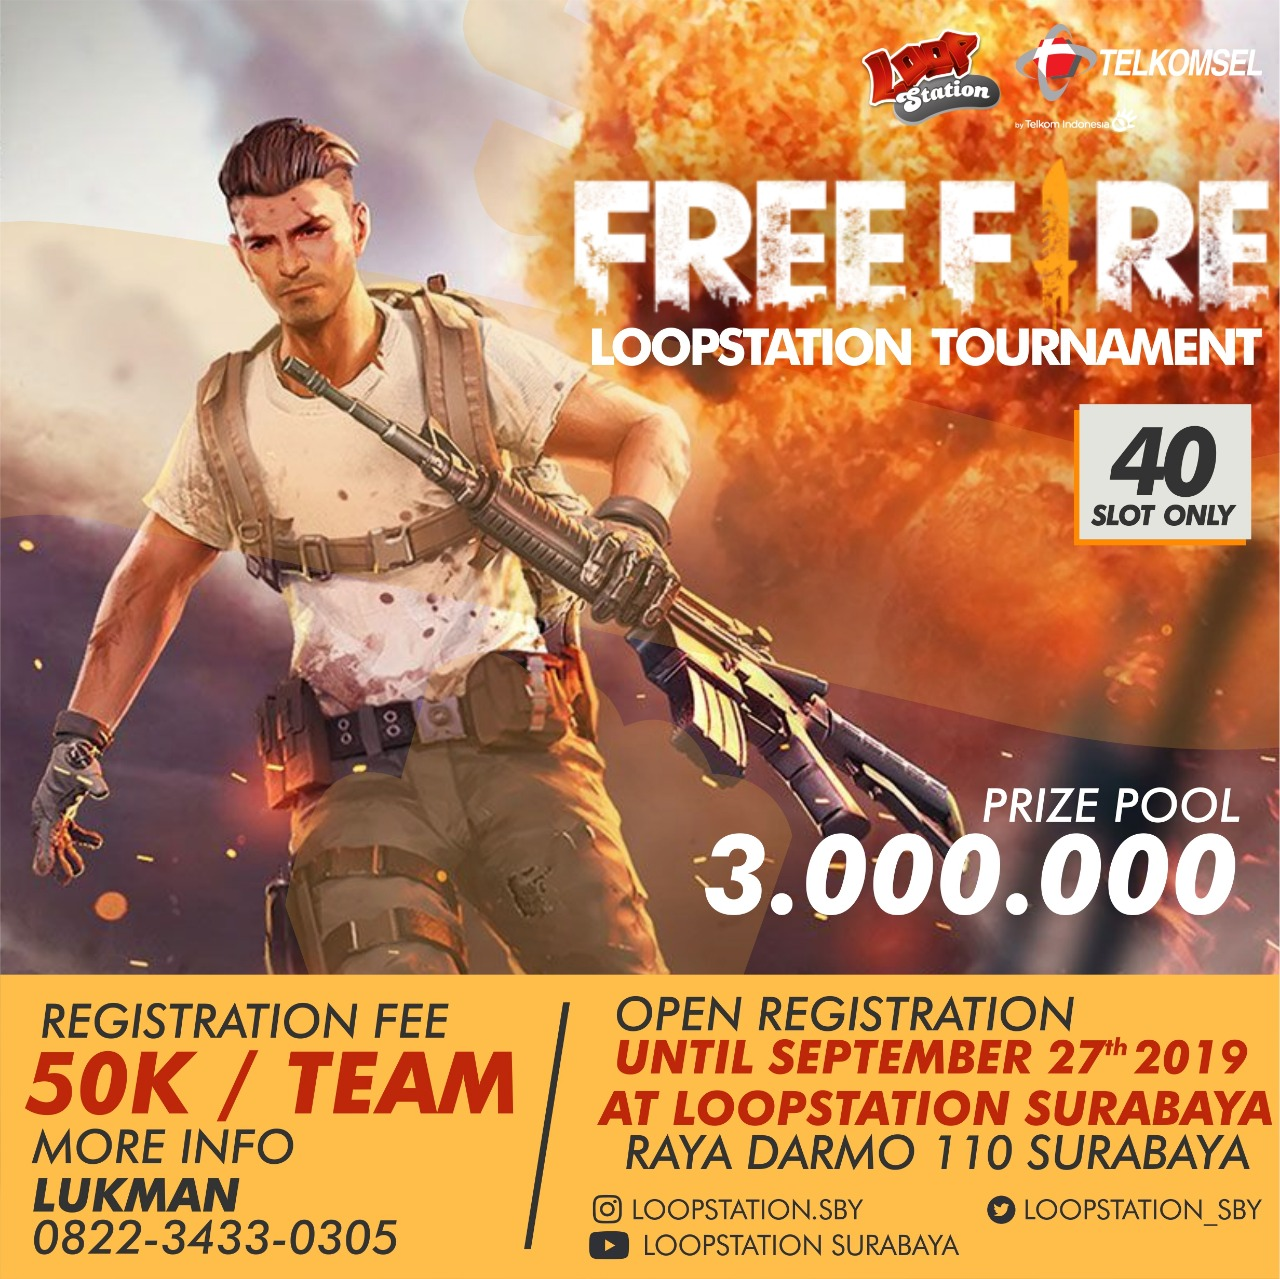 Free Fire Loopstation Tournament 2019